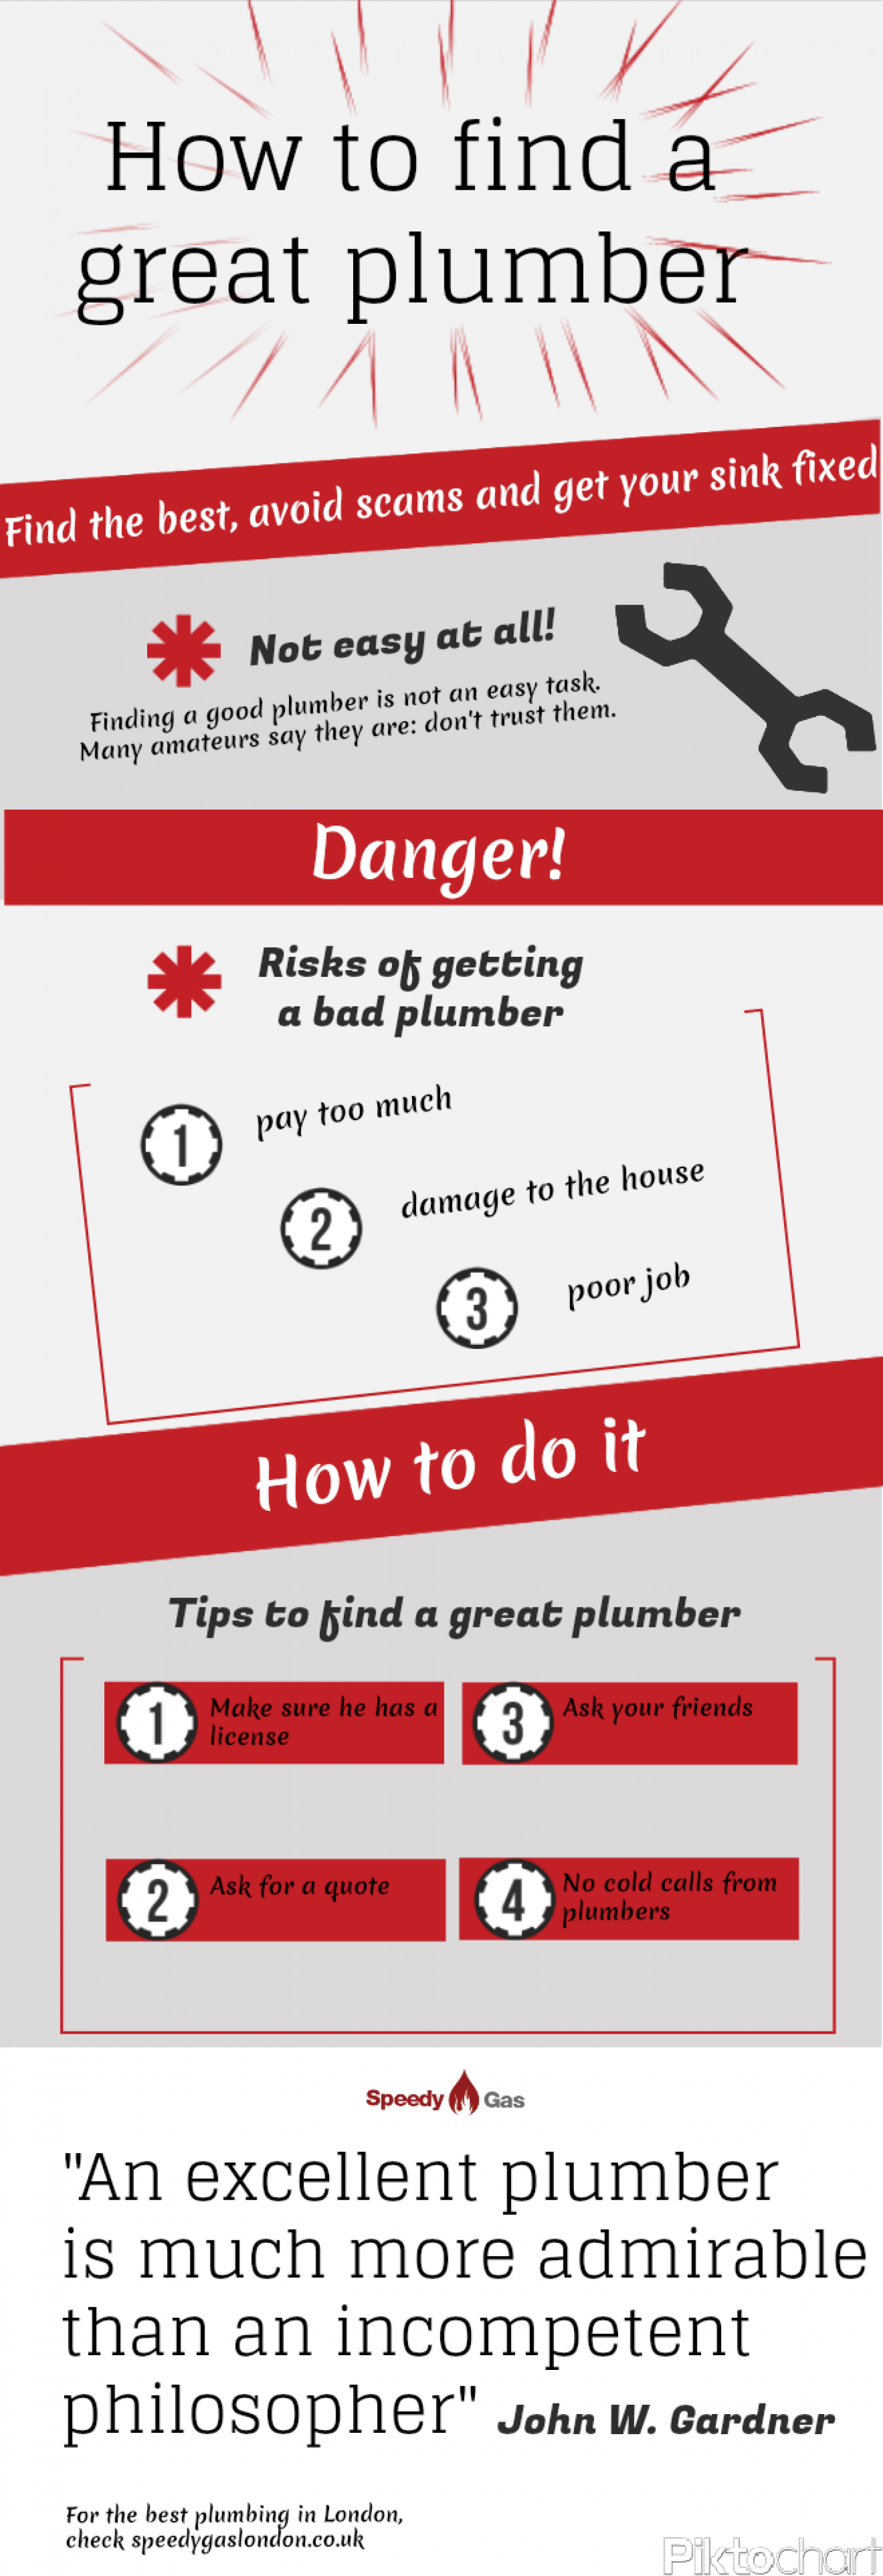 How to Find a Great Plumber Infographic